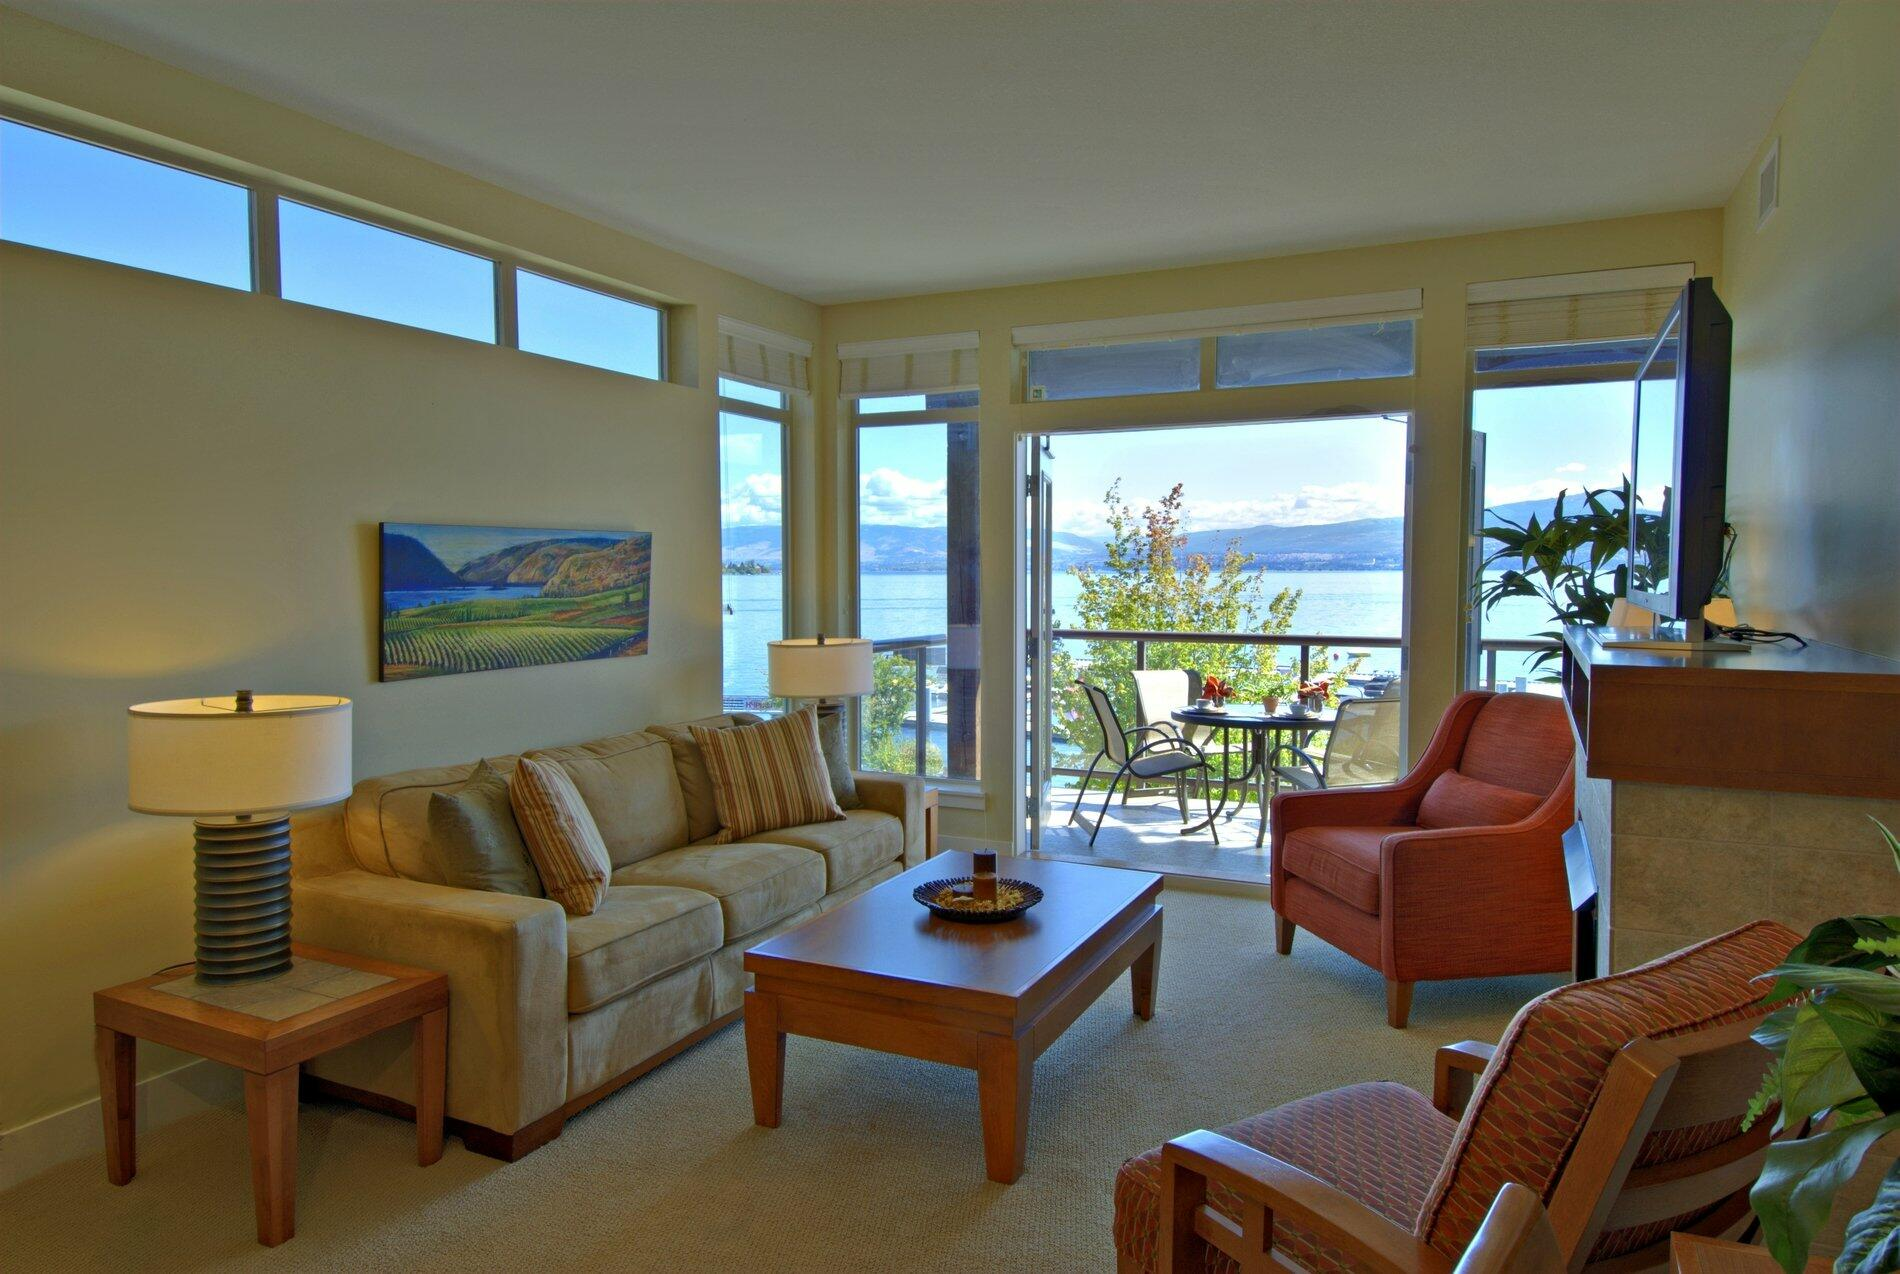 Cove suite living room lakeview